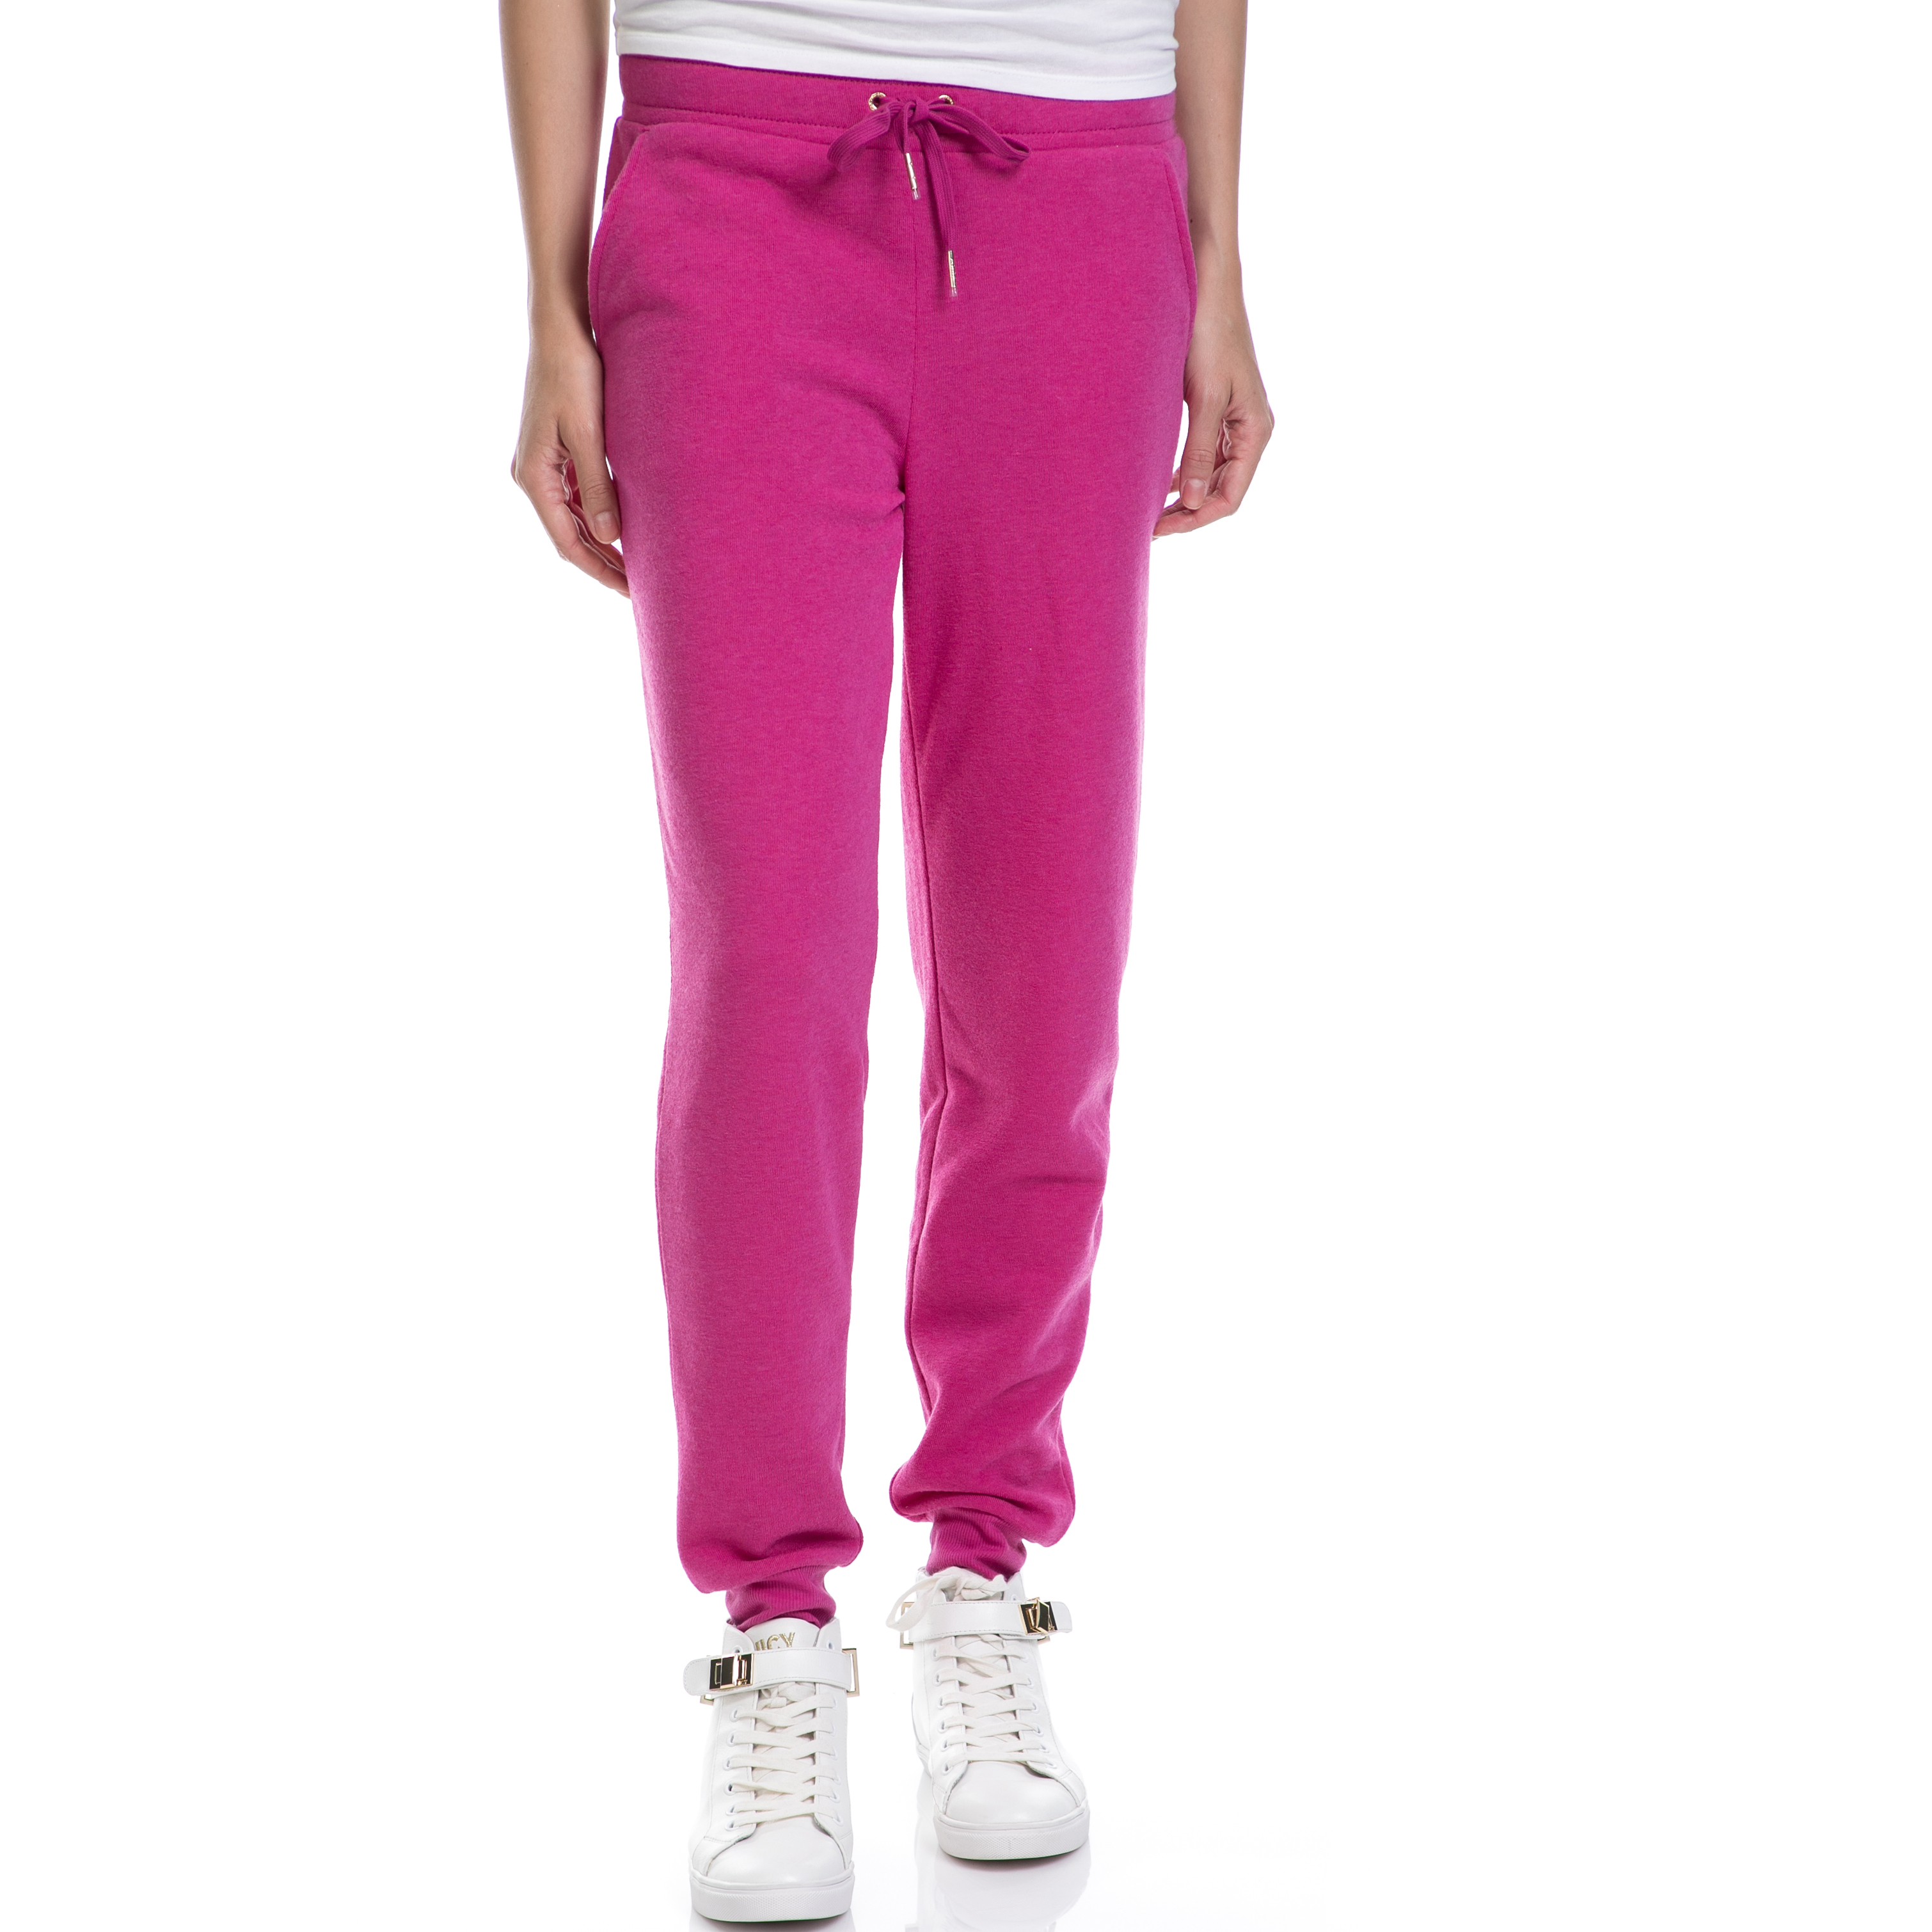 JUICY COUTURE – Γυναικείο παντελόνι JUICY COUTURE ροζ